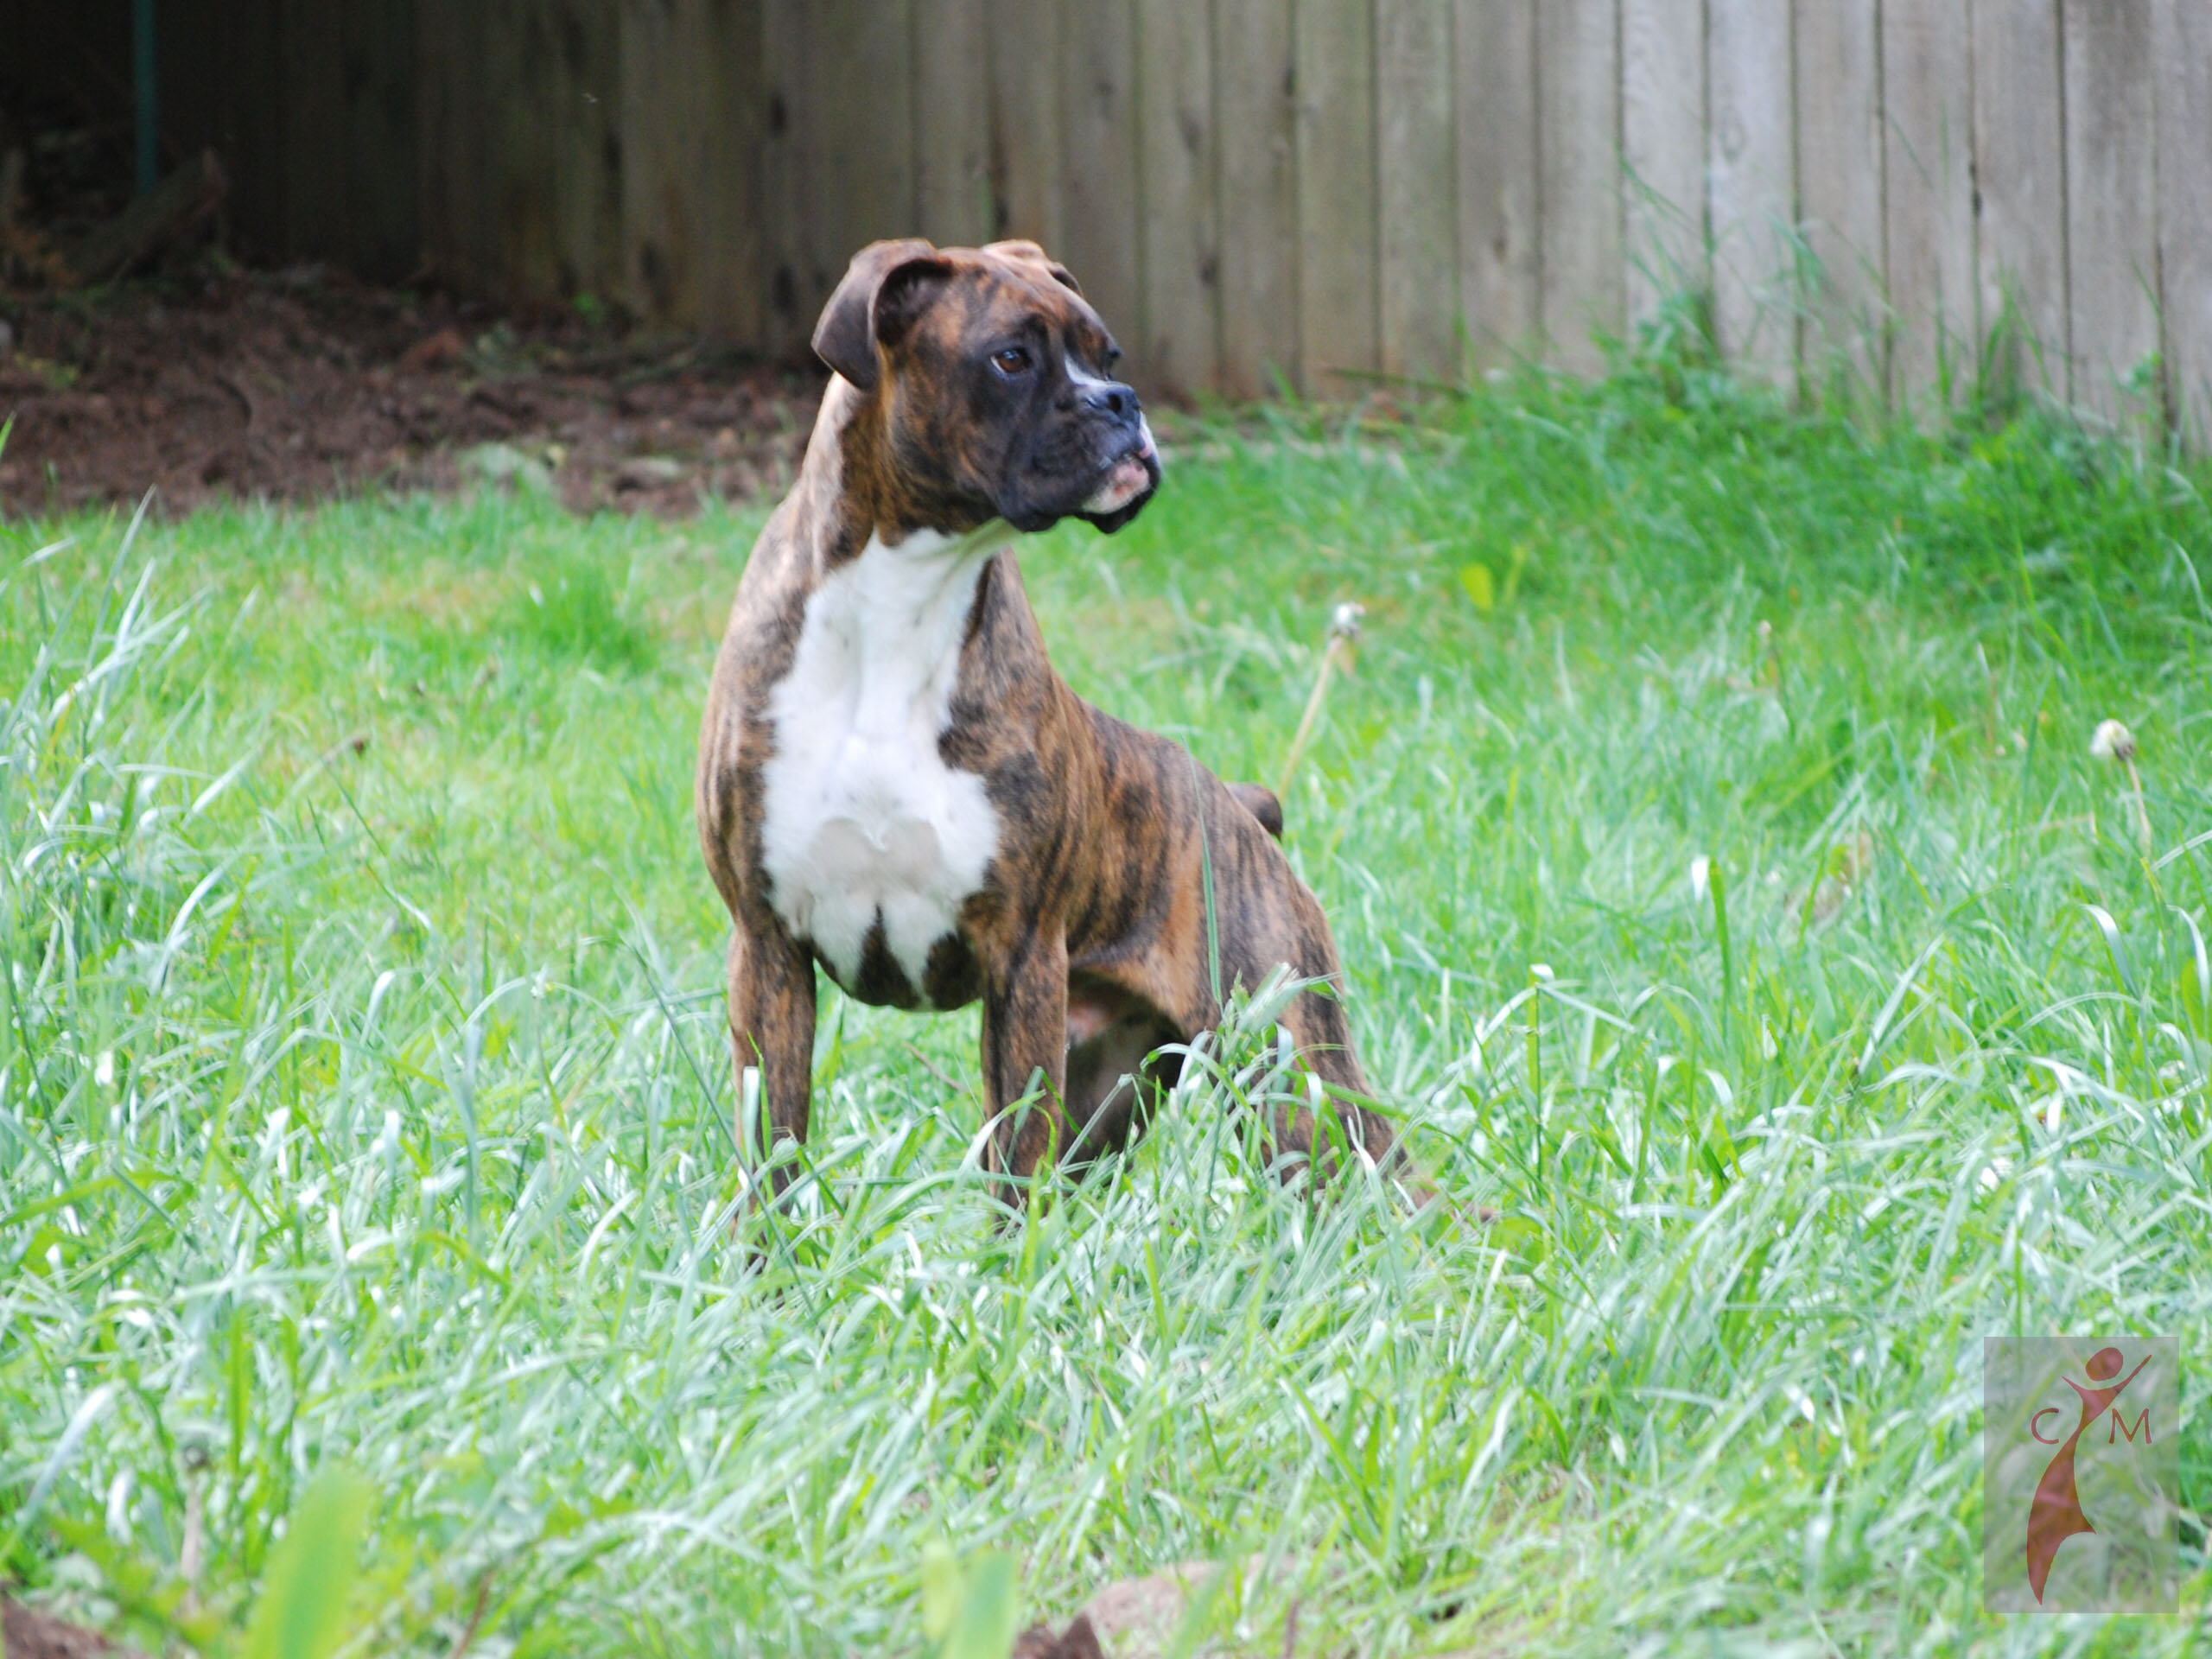 Brindle Boxer on alert in tall grass